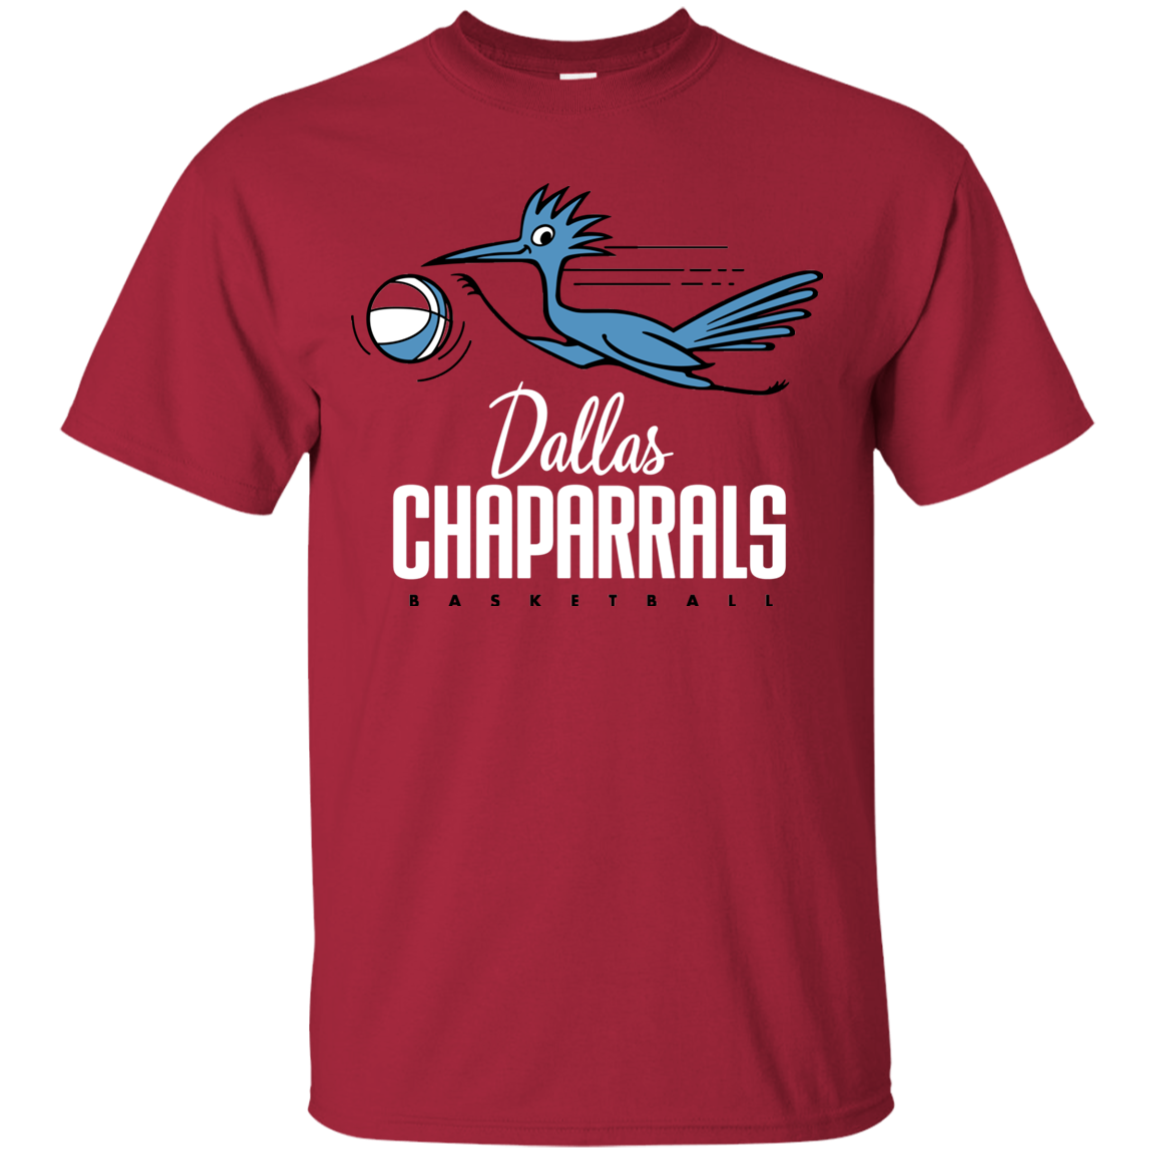 detailing a4c10 efa6b US $12.34 35% OFF|Dallas Chaparrals, ABA, Basketball, Retro, 1970's, 70's,  Texas, Jersey Logo, Thr Harajuku Tops Fashion Classic Unique t Shirt-in ...